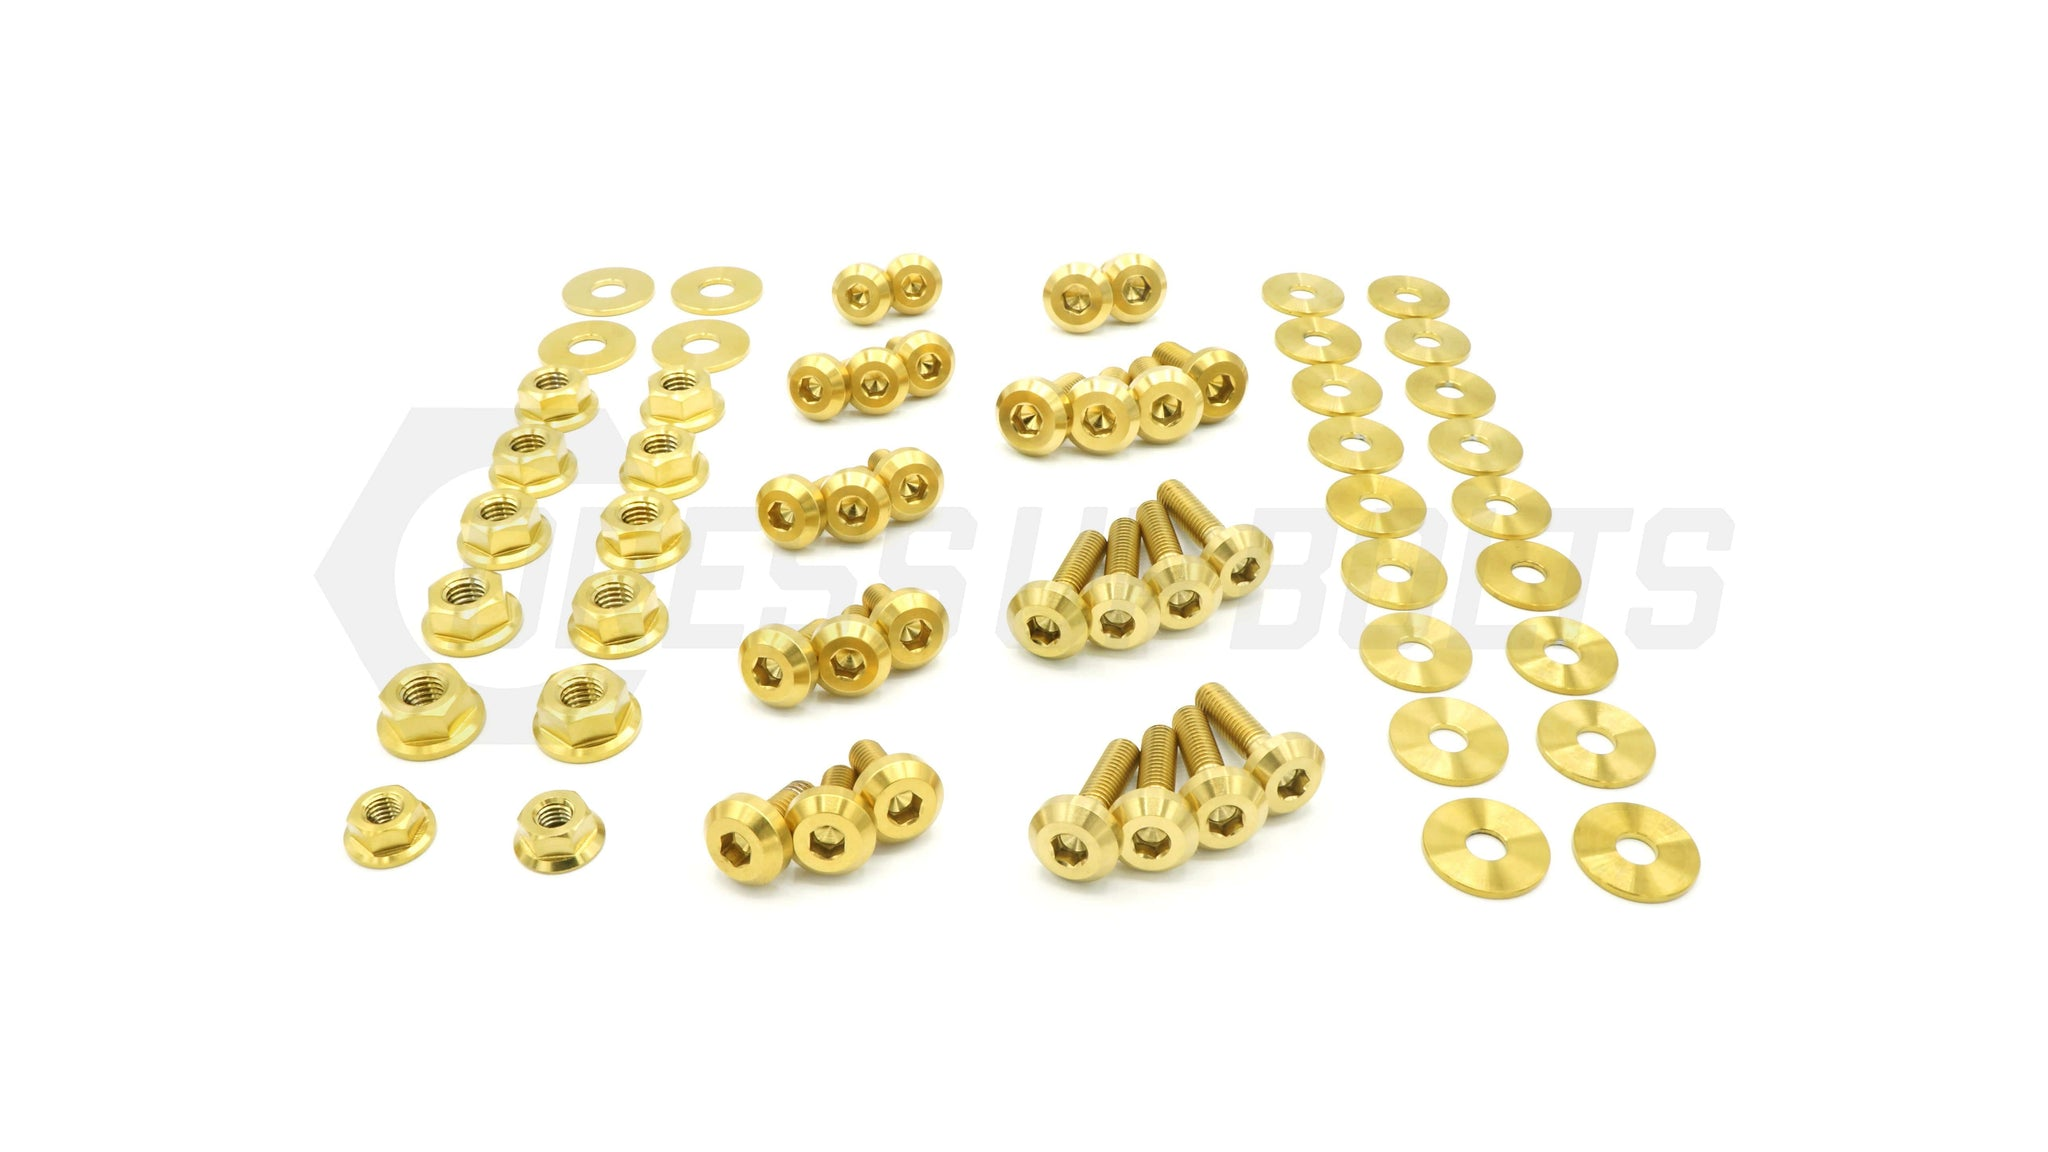 Infiniti Q60 (2014-2015) Titanium Dress Up Bolts Engine Bay Kit - DressUpBolts.com